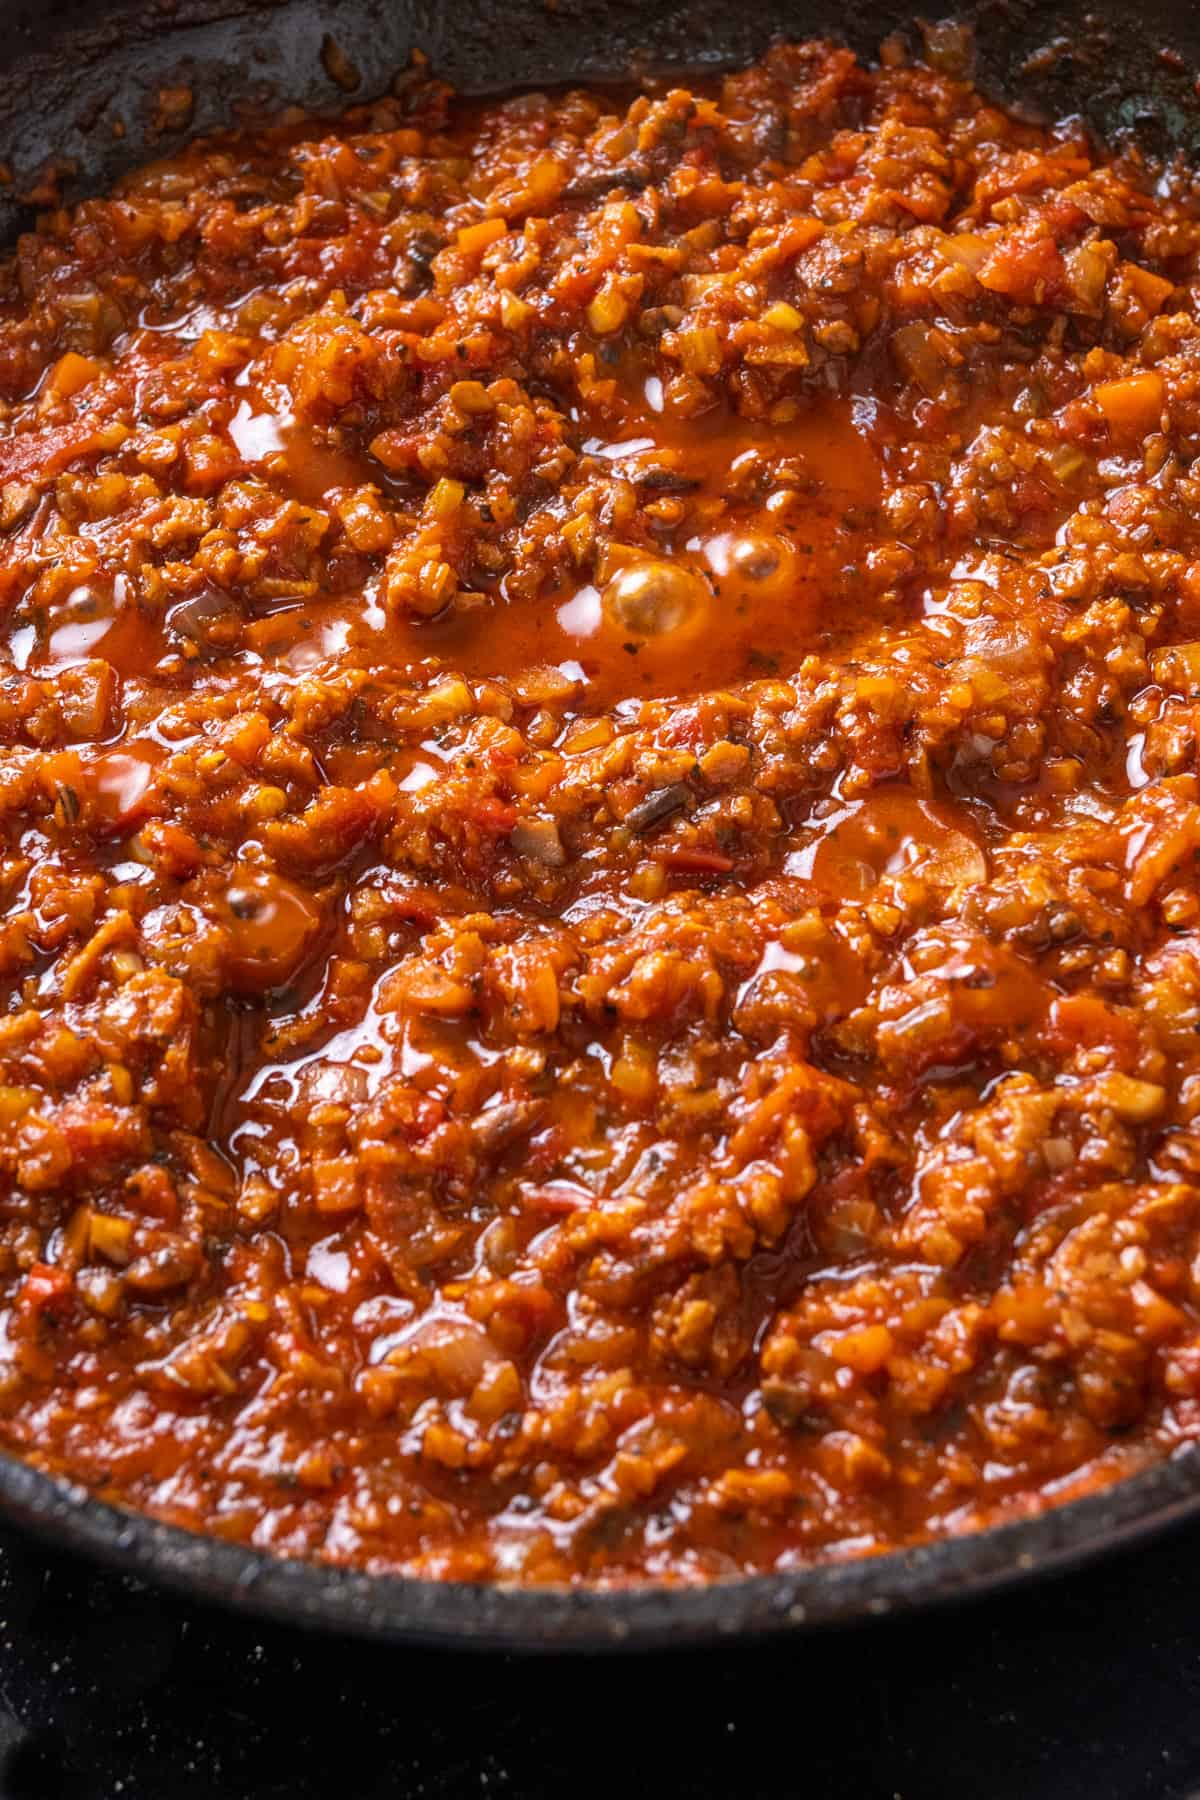 A thick and deep sauce with granular texture bubbling in a saucepan.